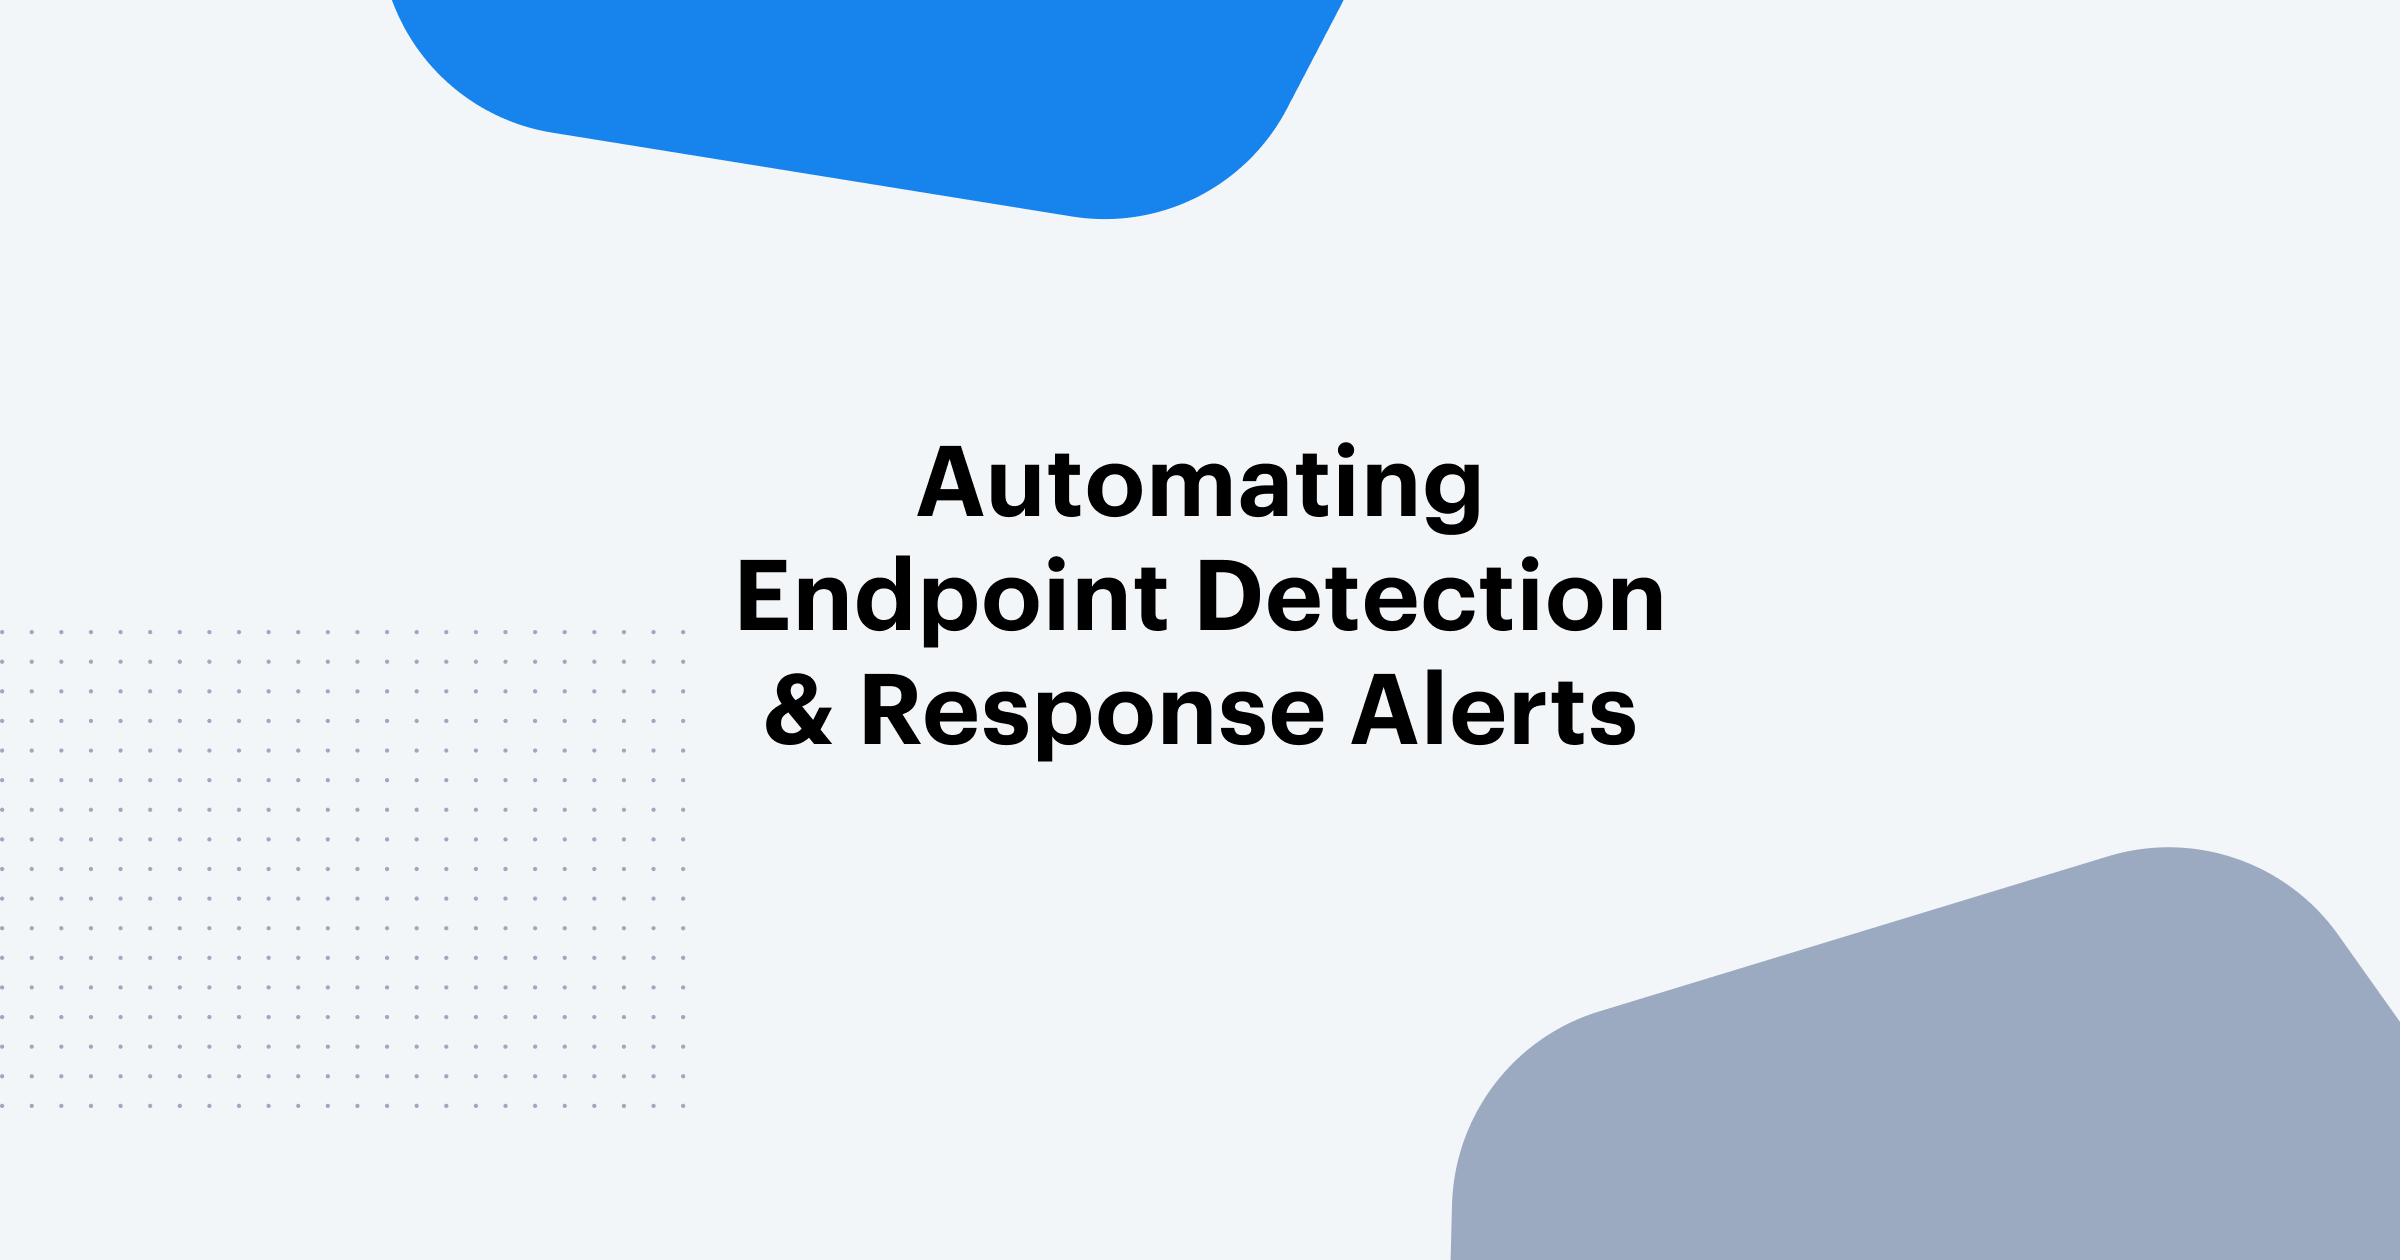 Automating Endpoint Detection & Response Alerts